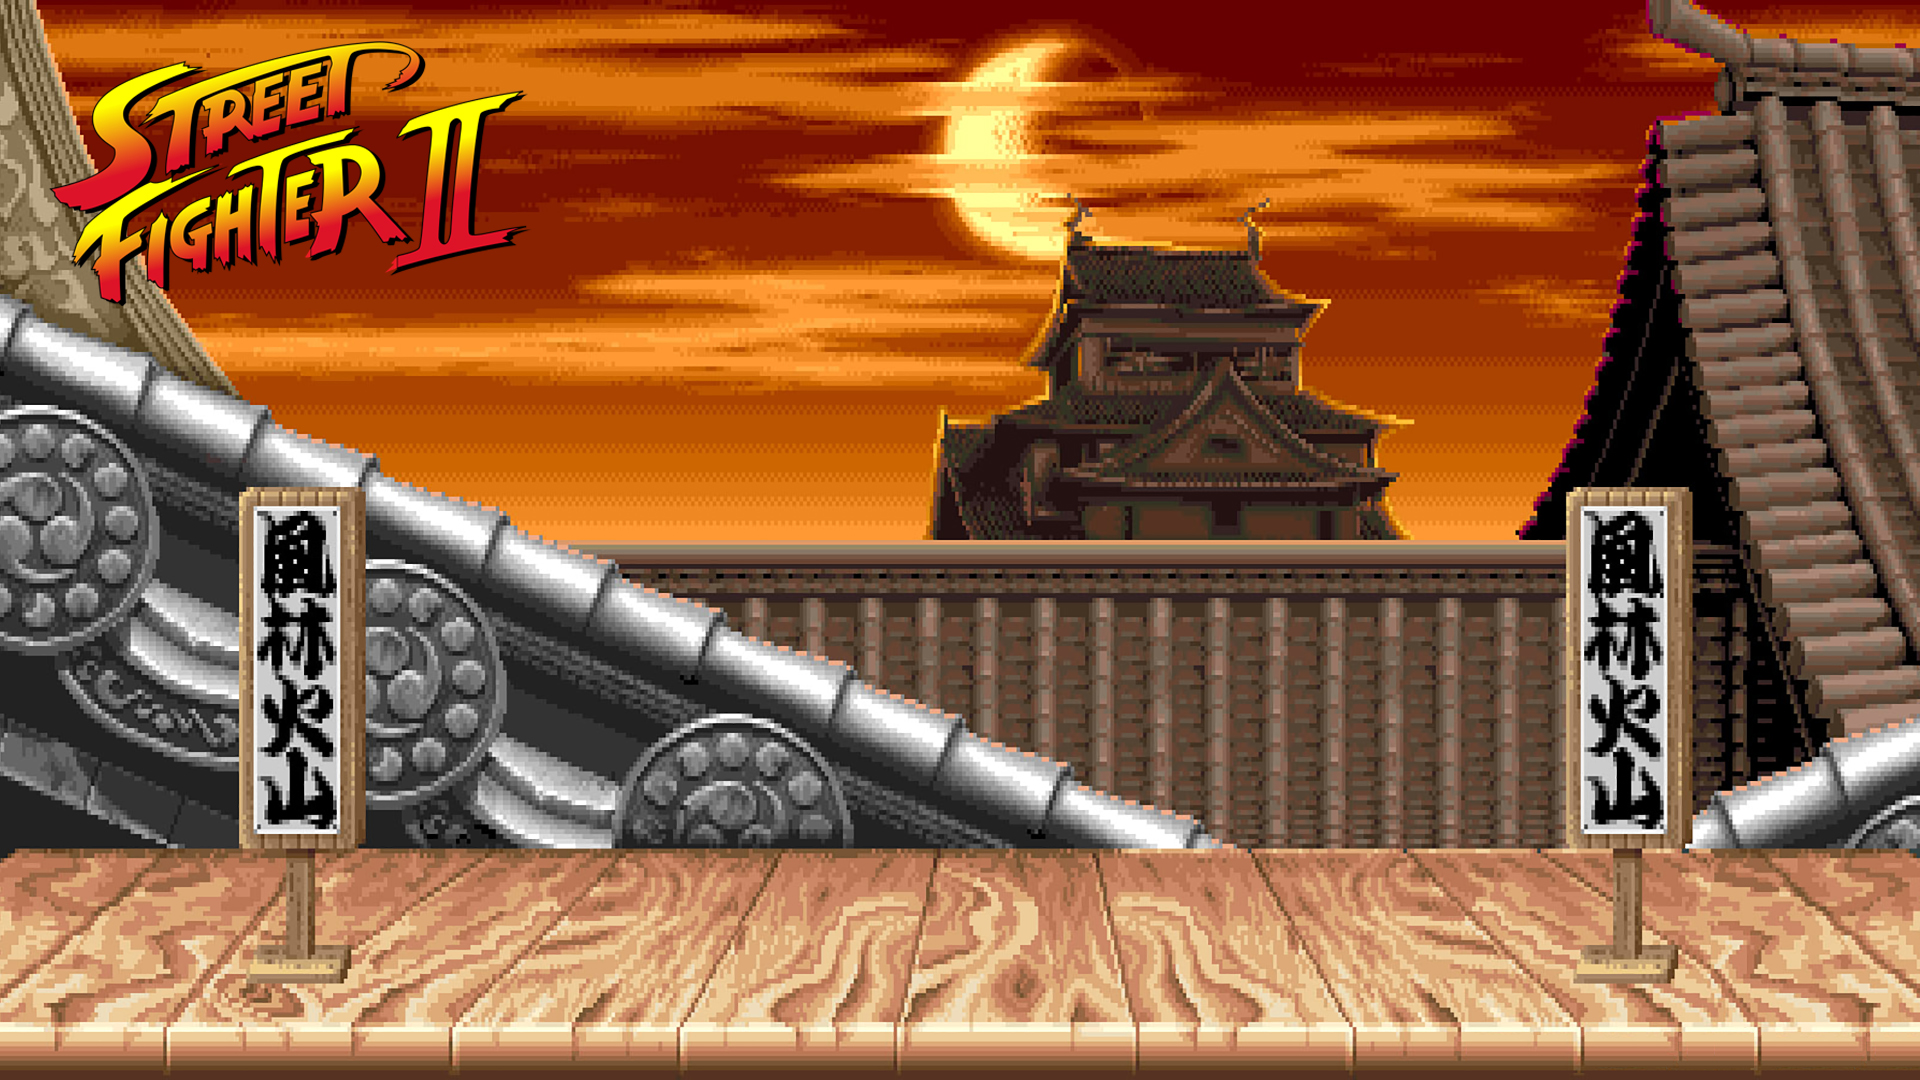 Street Fighter II Ryu's stage. Virtual background to use on Zoom, Microsoft Teams, Skype, Google Meet, WebEx or any other compatible app.